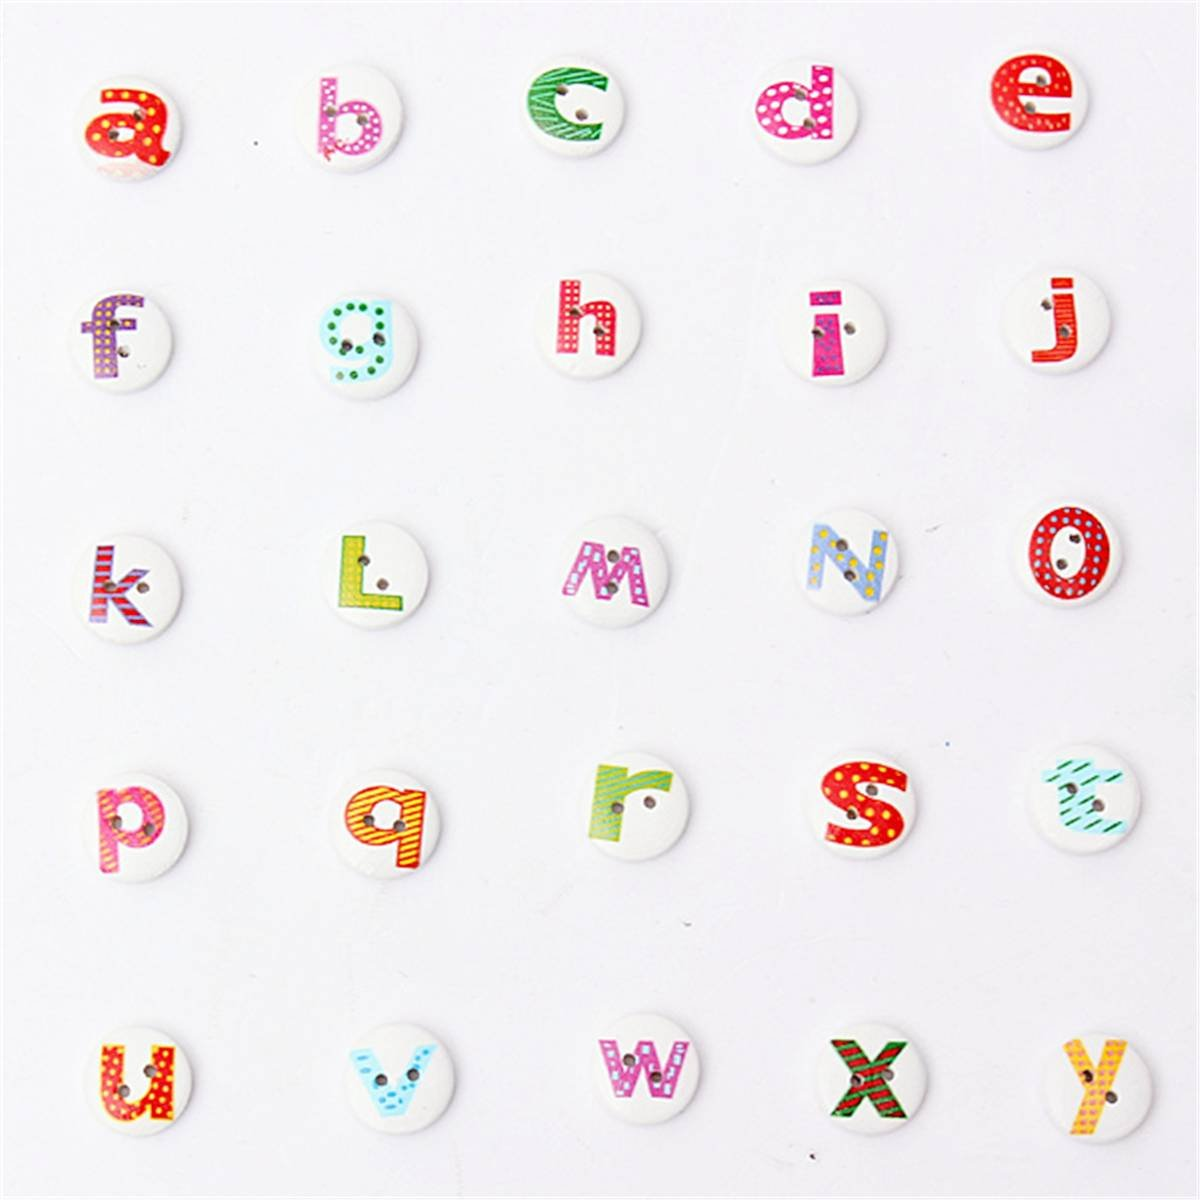 NHBR 100Pcs Mixed Painted Letter Alphabet Wooden Sewing Button Scrapbooking